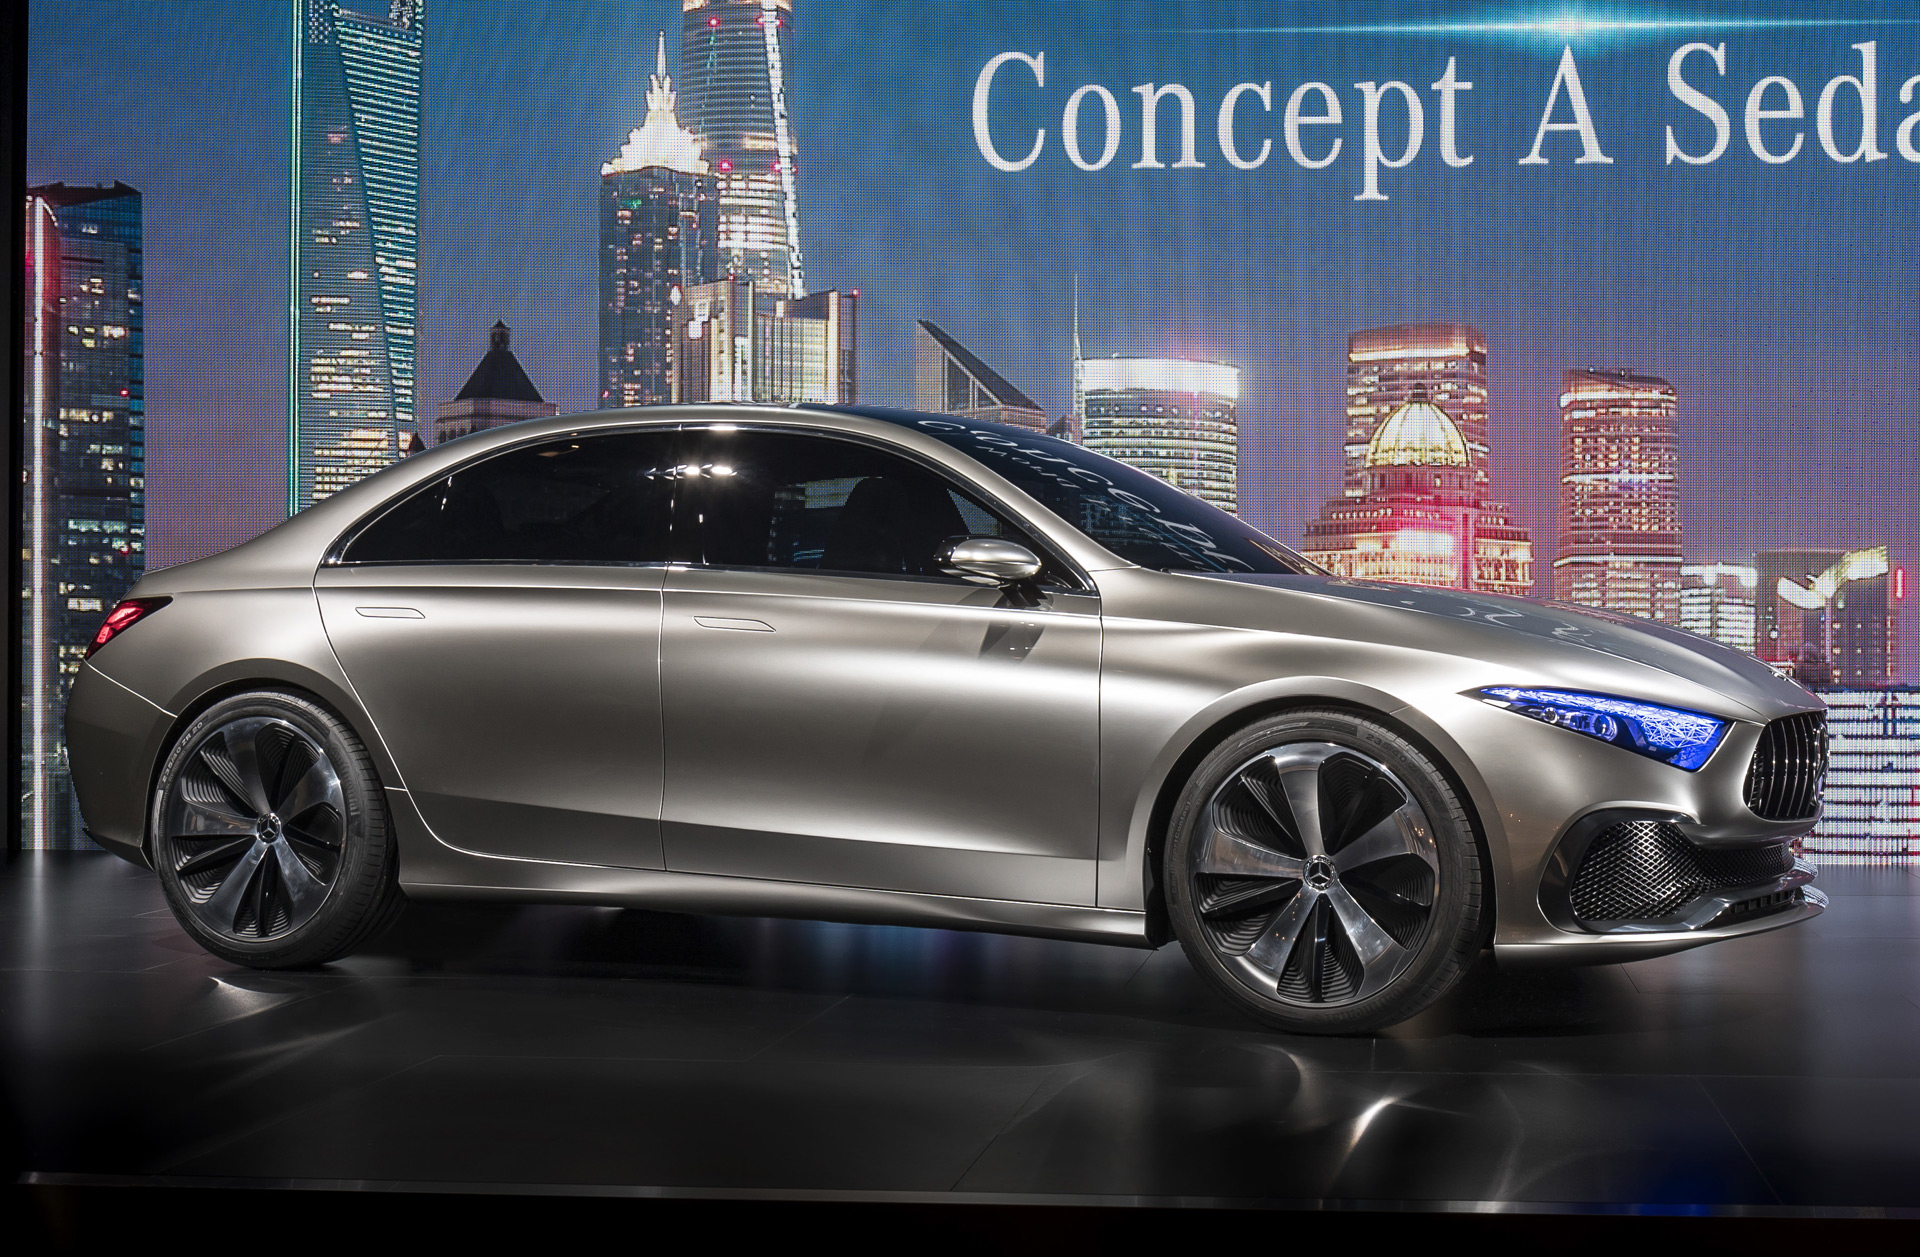 Mercedes benz a class sedan previewed by concept in shanghai for Mercedes benz a class